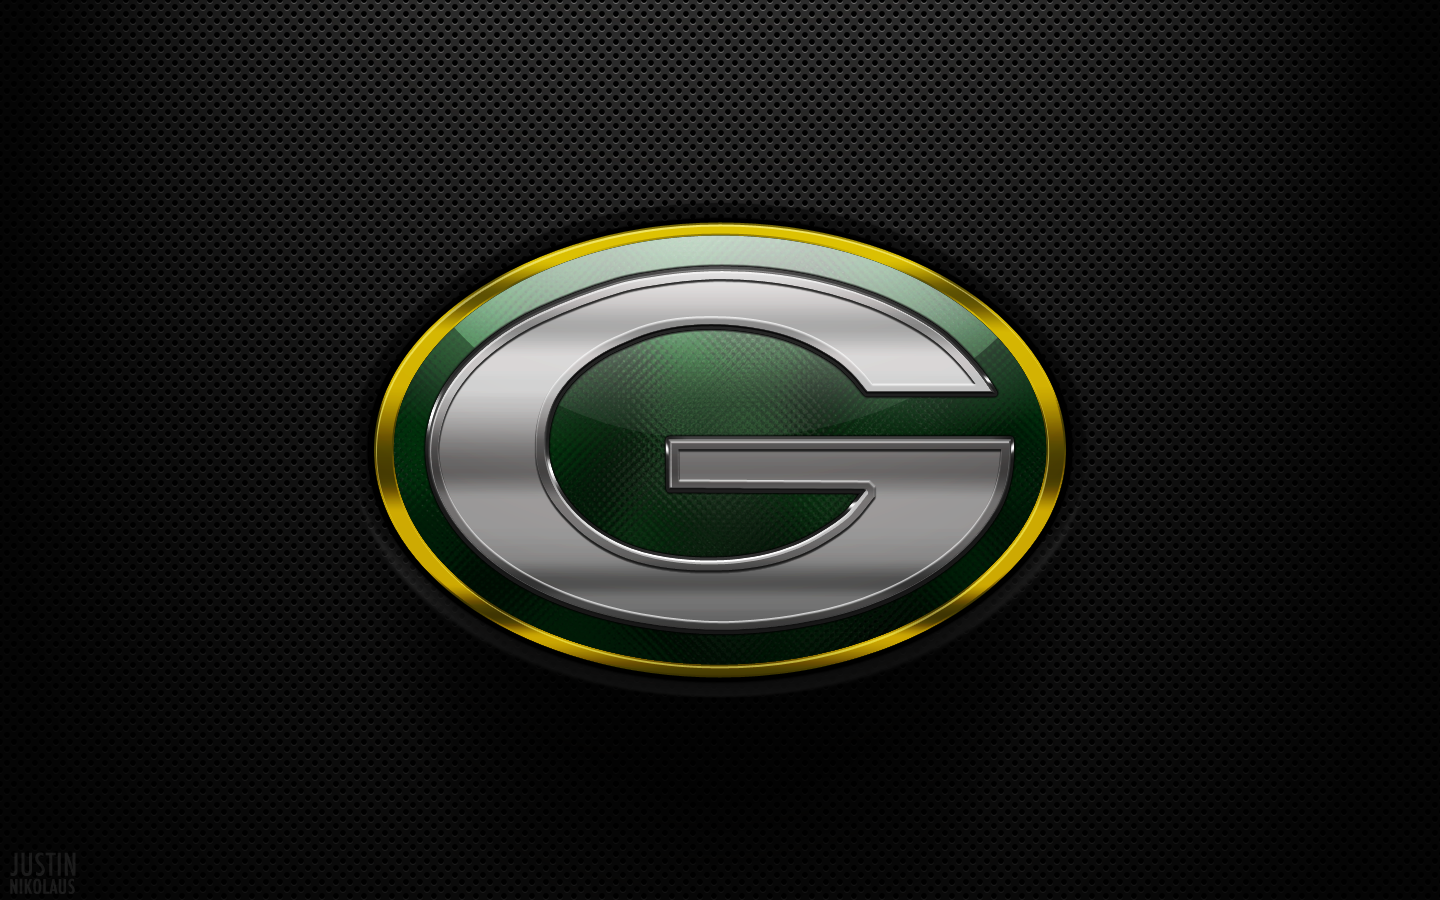 50+] Green Bay Packers Wallpaper on